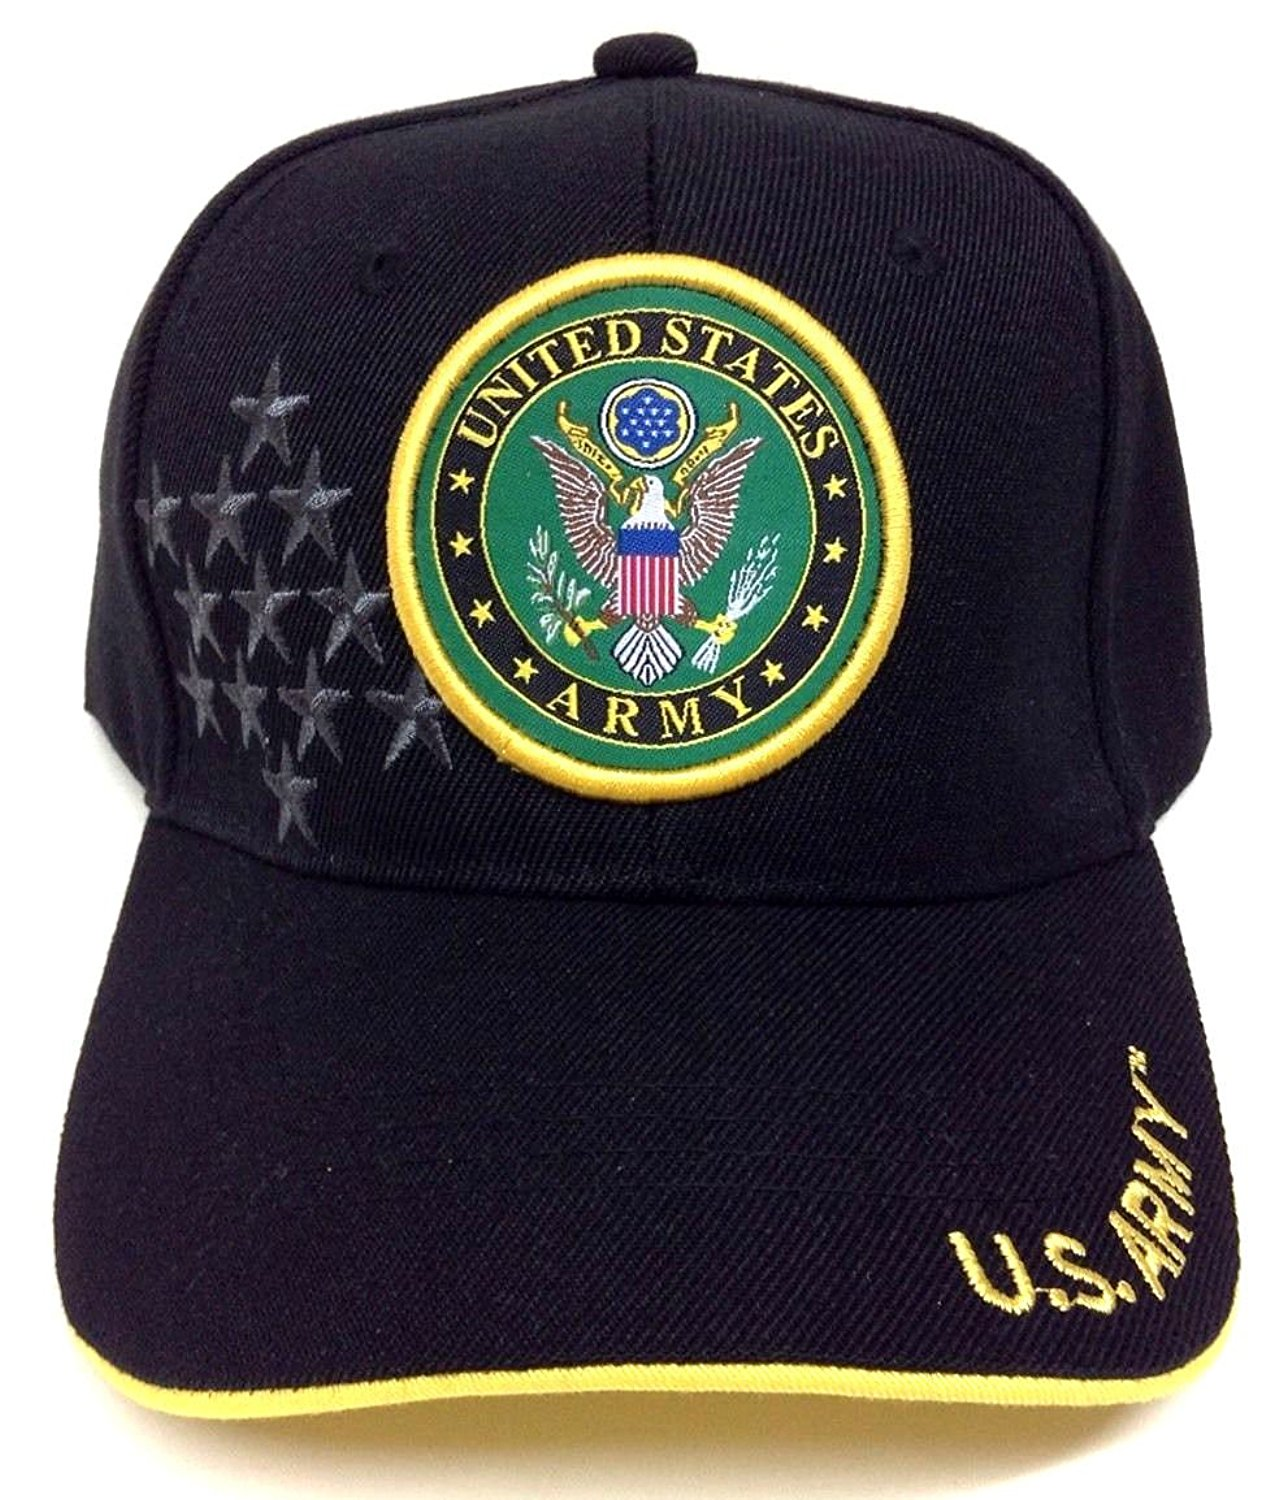 7775f3522f8 Get Quotations · Black United States Army Seal Logo Adjustable Hat